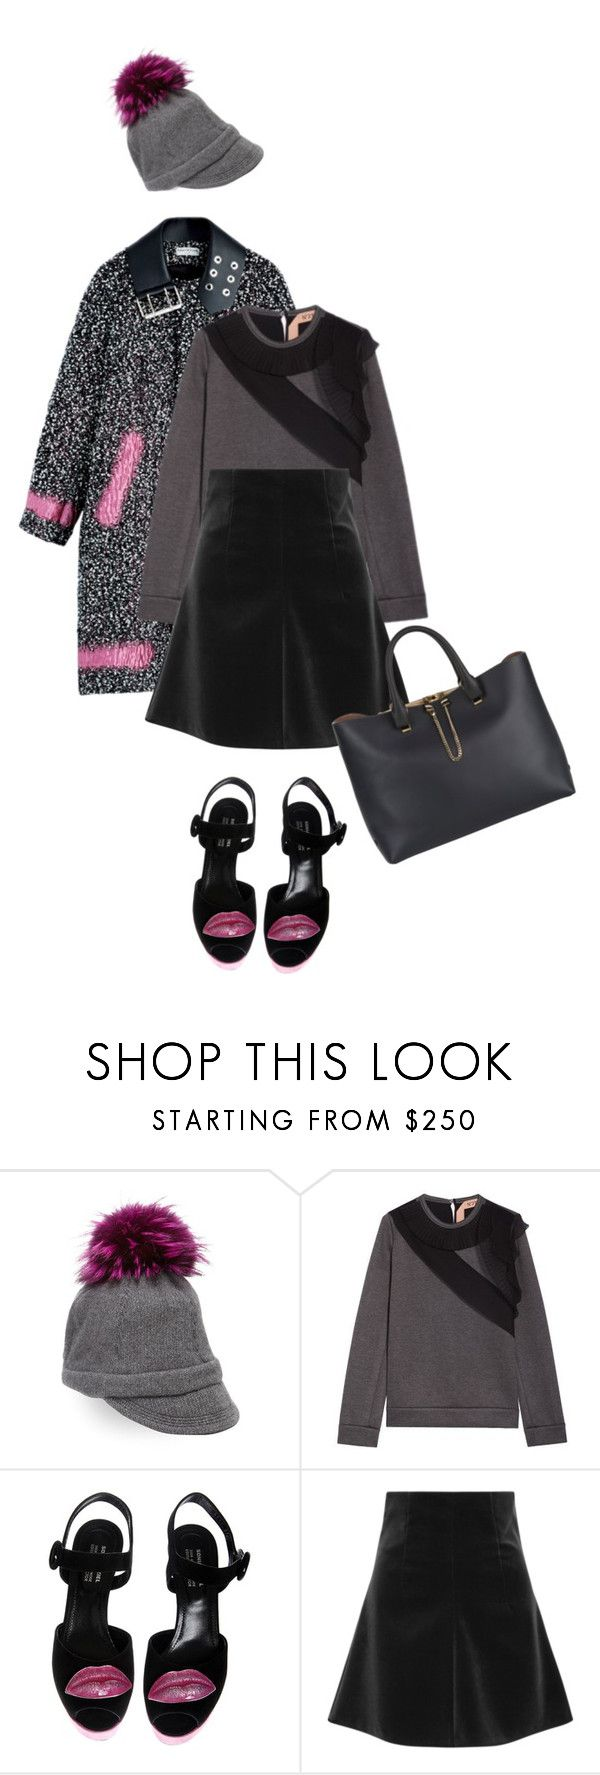 """""""places to go."""" by mercimasada ❤ liked on Polyvore featuring Portolano, N°21, Sonia Rykiel, RED Valentino, Chloé, Winter, CasualChic, mixnmatch, Semicasual and nobackground"""